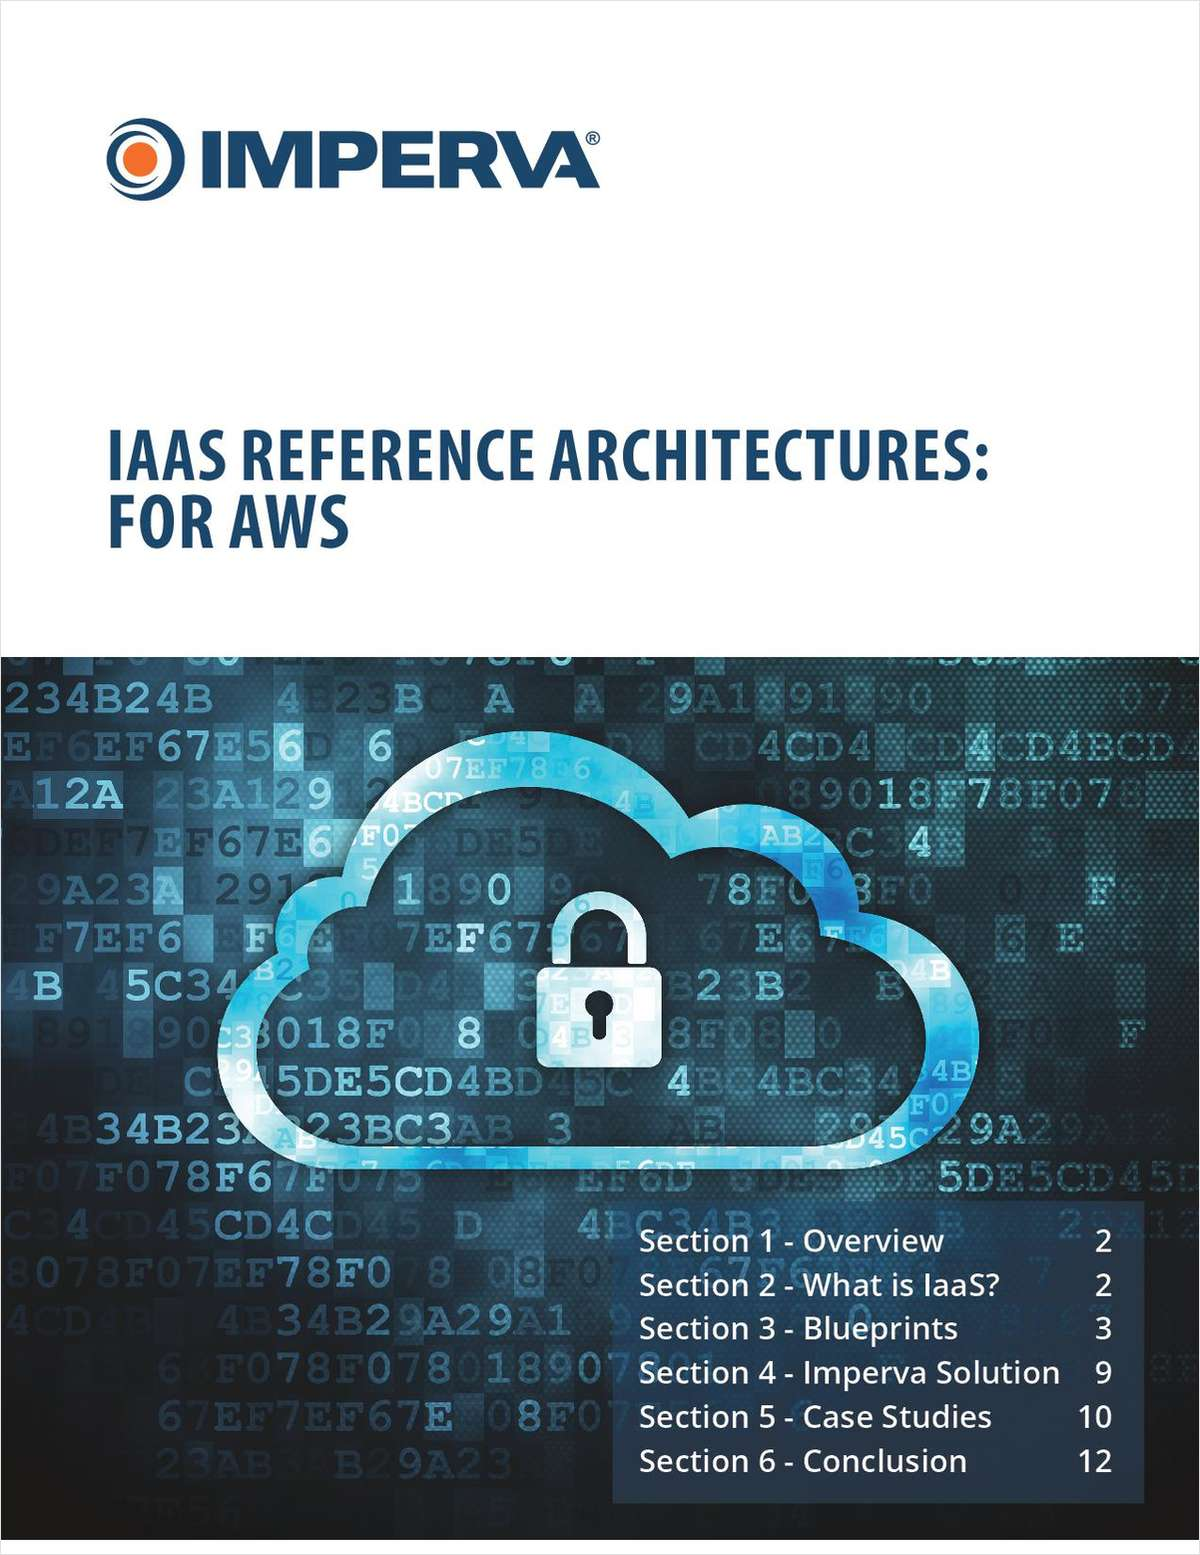 IaaS Reference Architectures: for AWS